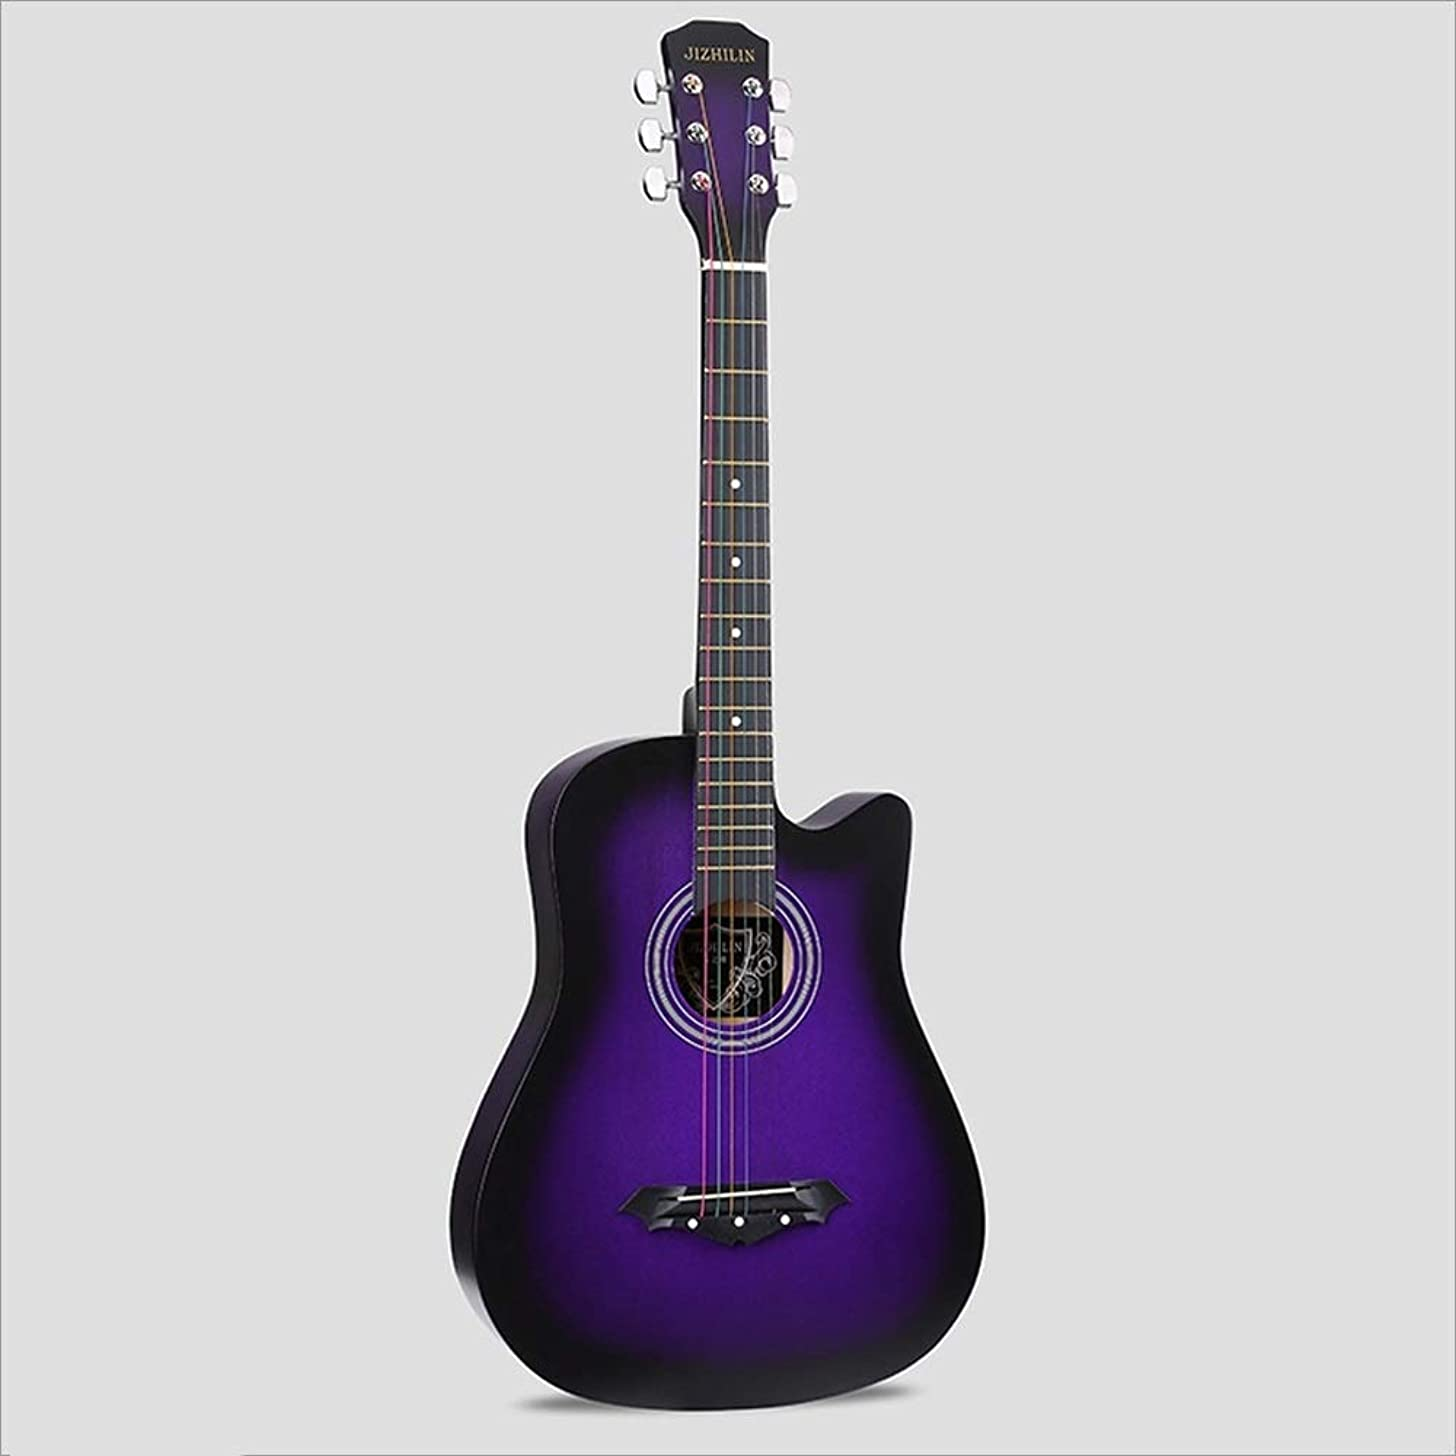 Aigliady Beech Beginner Students Practice Teenager Boy Girl Guitar 38 Inch Acoustic Guitar Belt Bag With Rope Tuner Capo Polishing Cloth (Color : Purple)